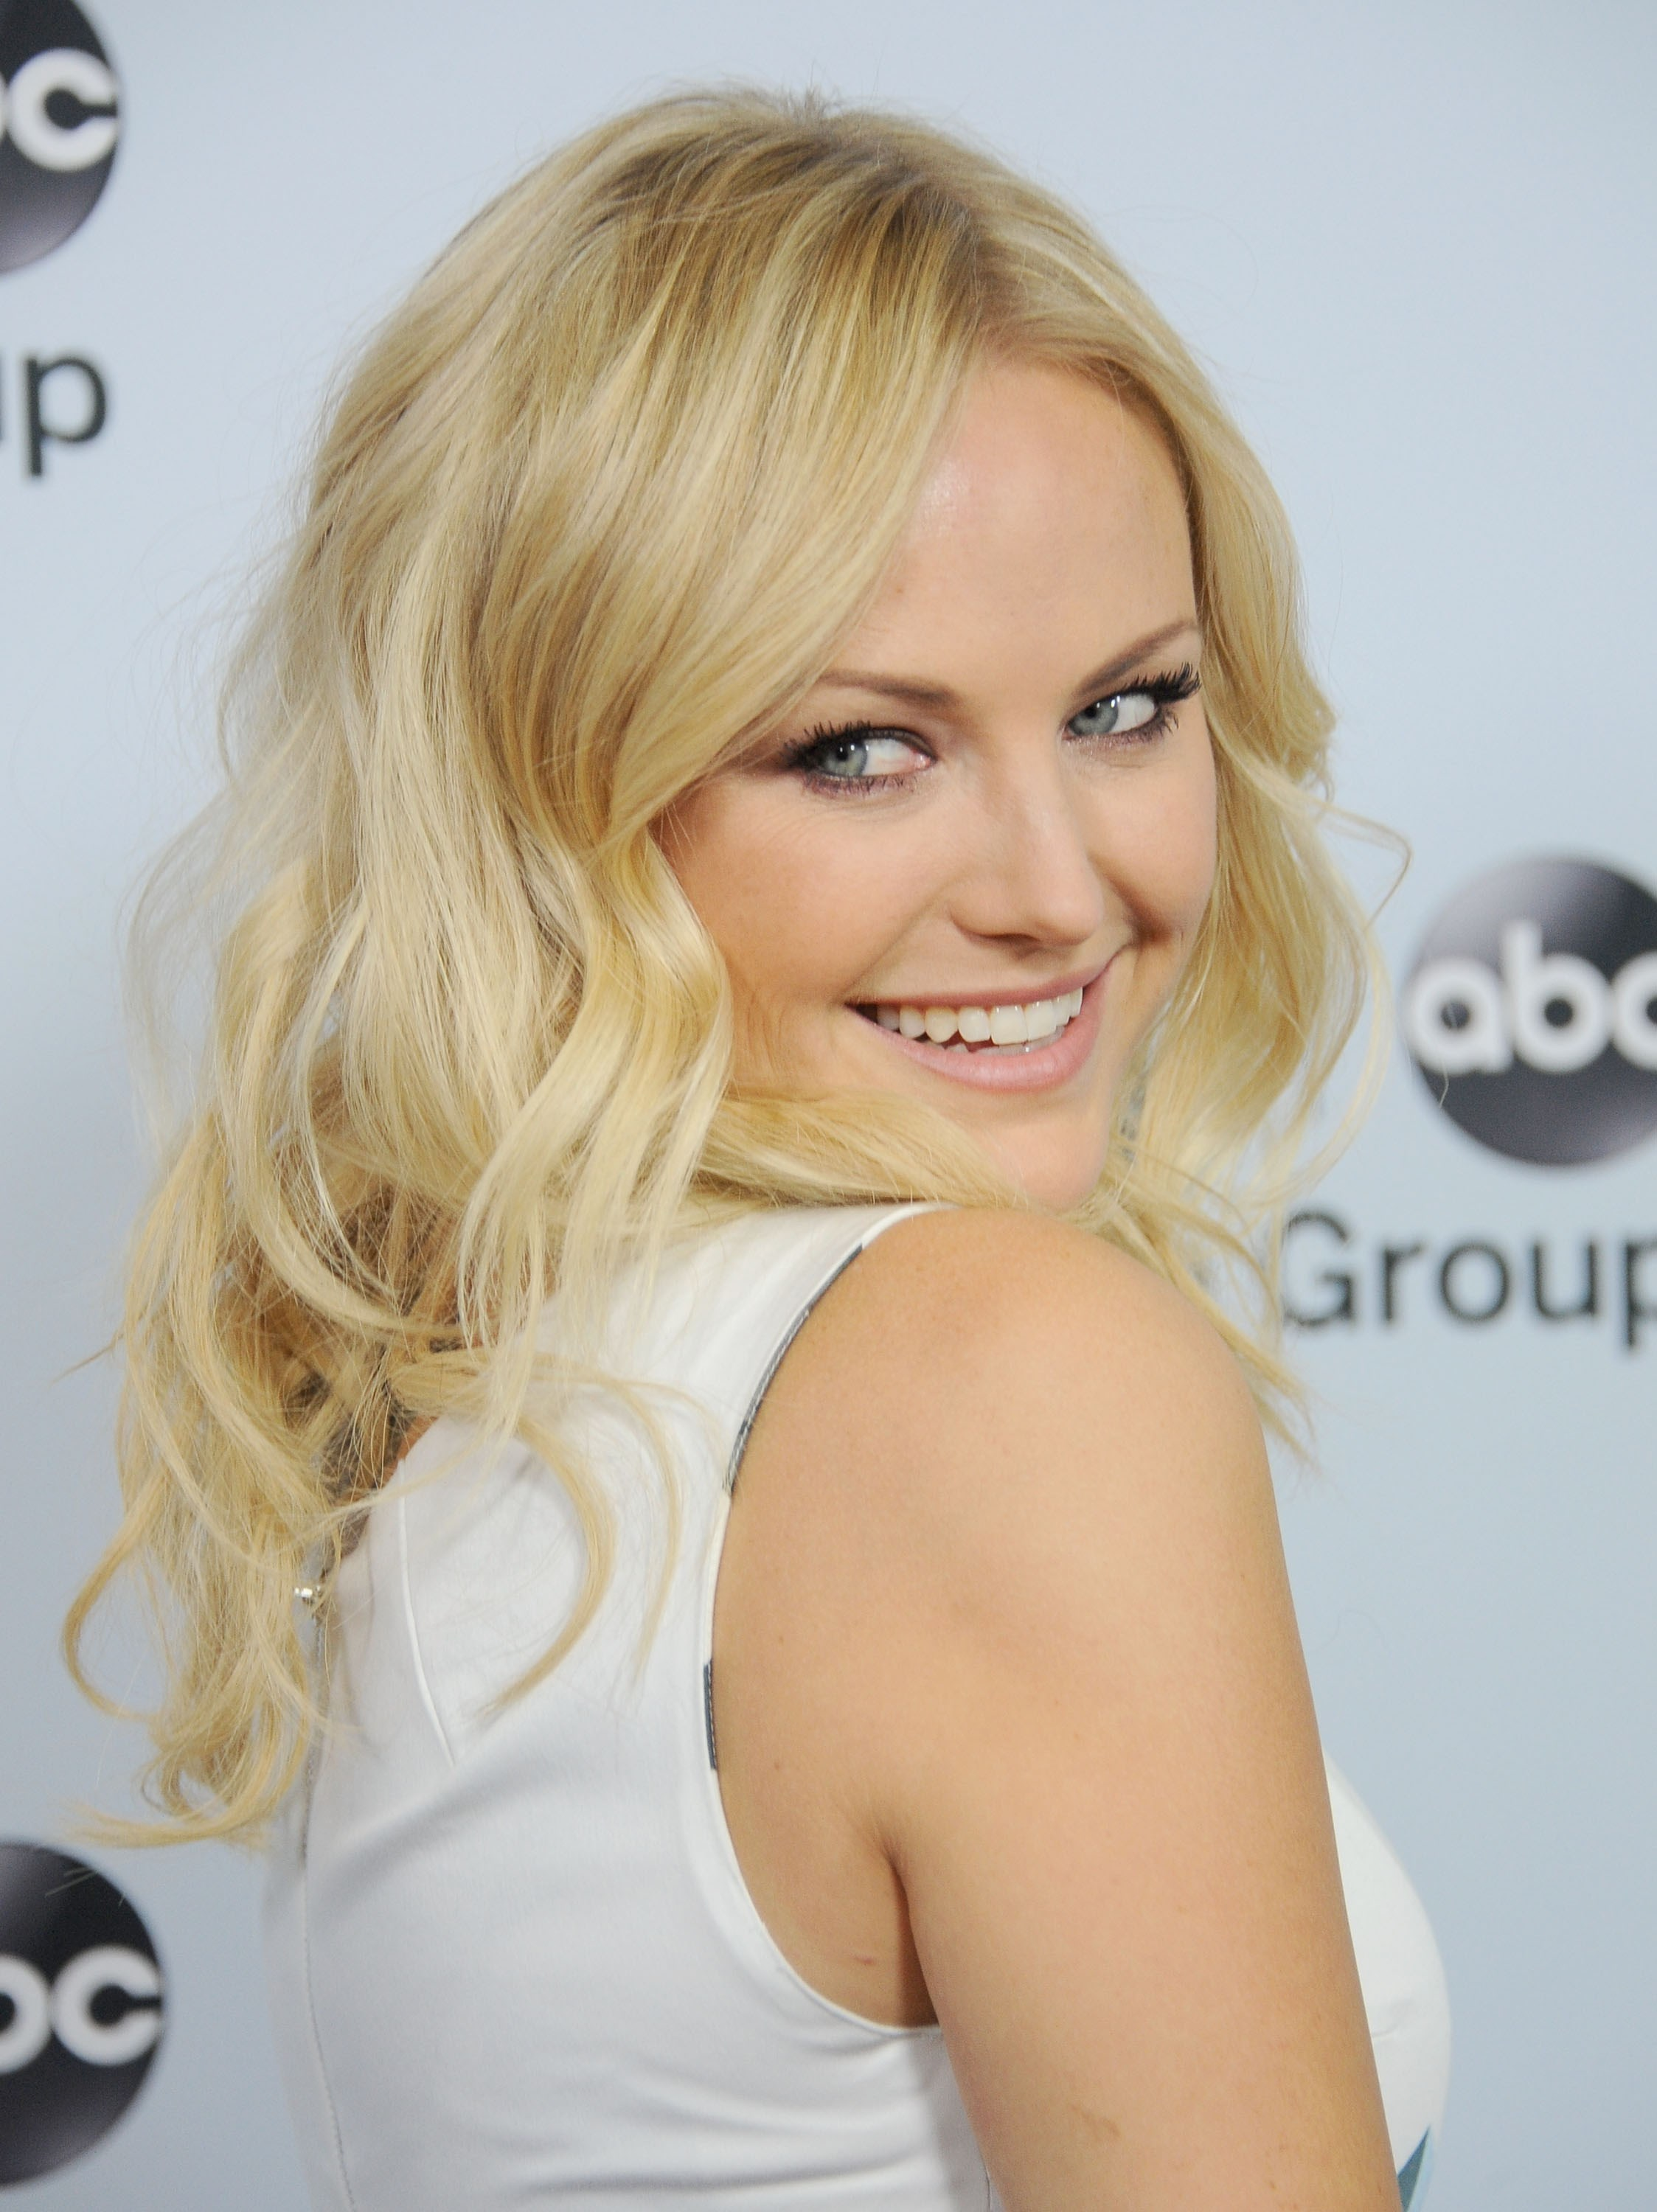 Malin Akerman | Known people - famous people news and biographies Malin Akerman